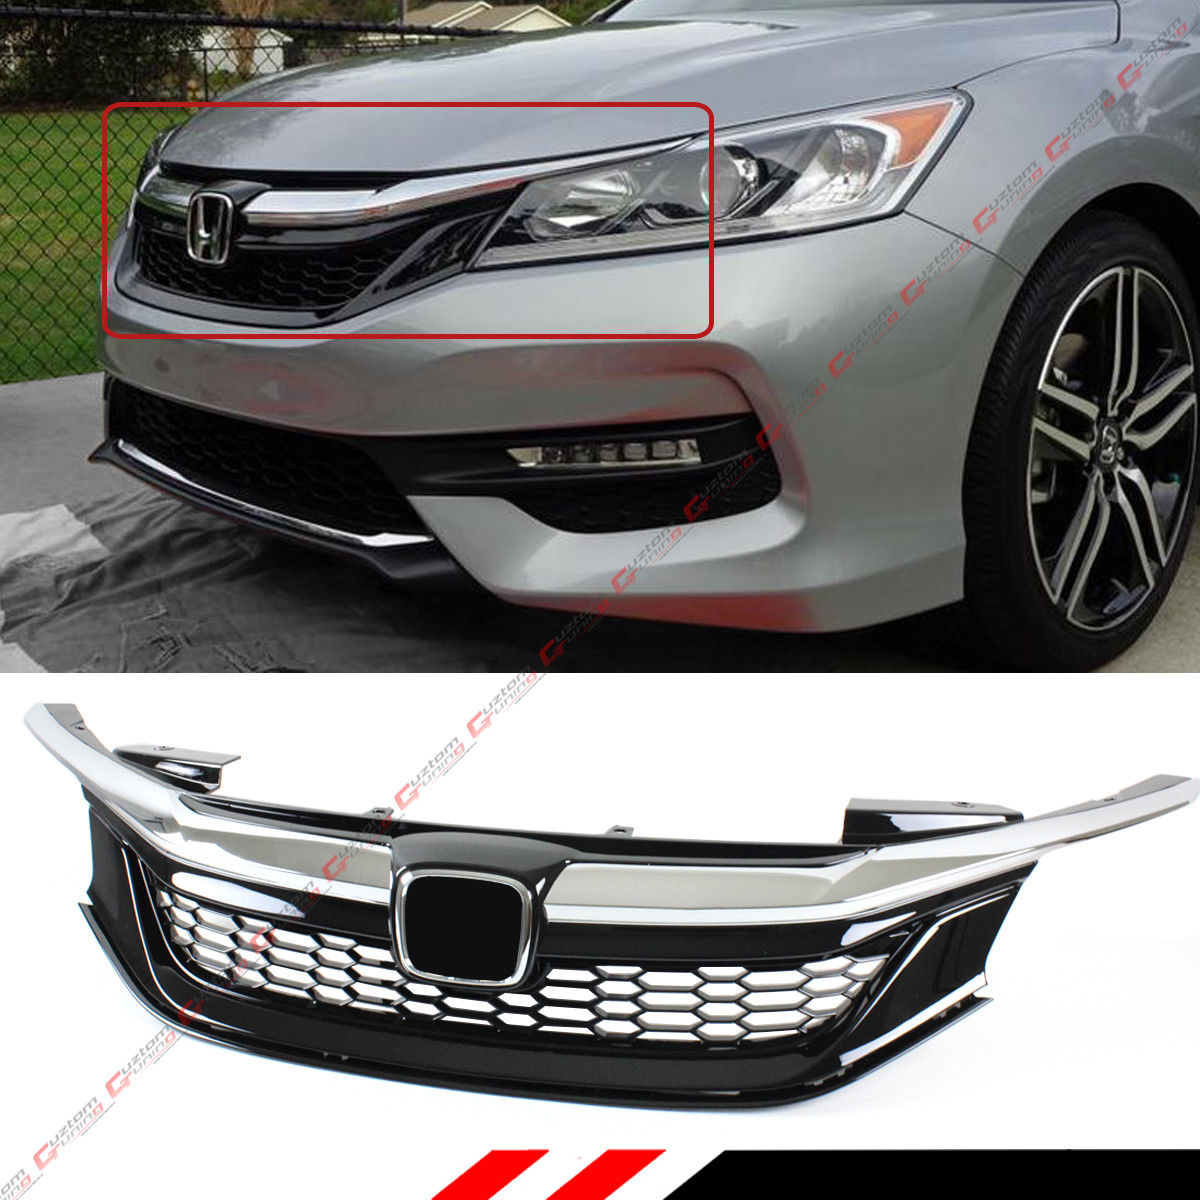 Awesome For 2016 17 9th Gen Honda Accord Sedan Chrome Black Jdm Sport Style Front Grille 2017 2018